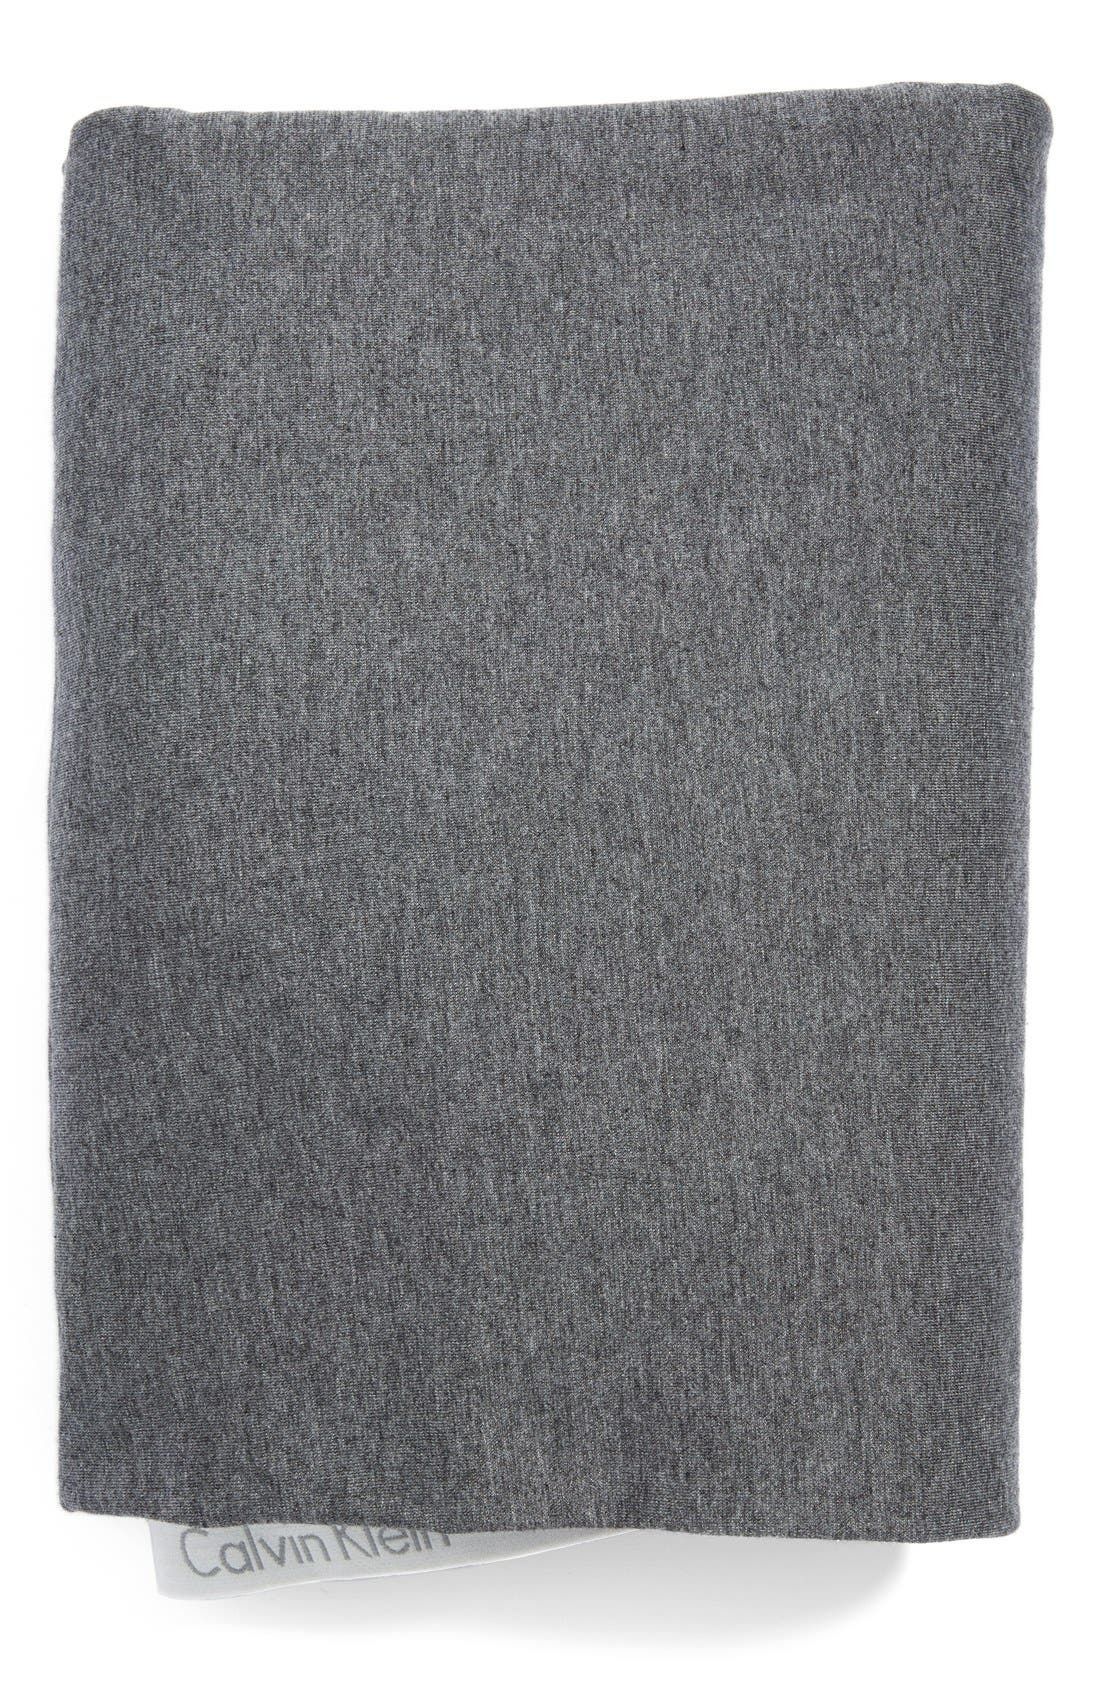 Modern Cotton Collection Cotton & Modal Fitted Sheet,                             Main thumbnail 1, color,                             CHARCOAL